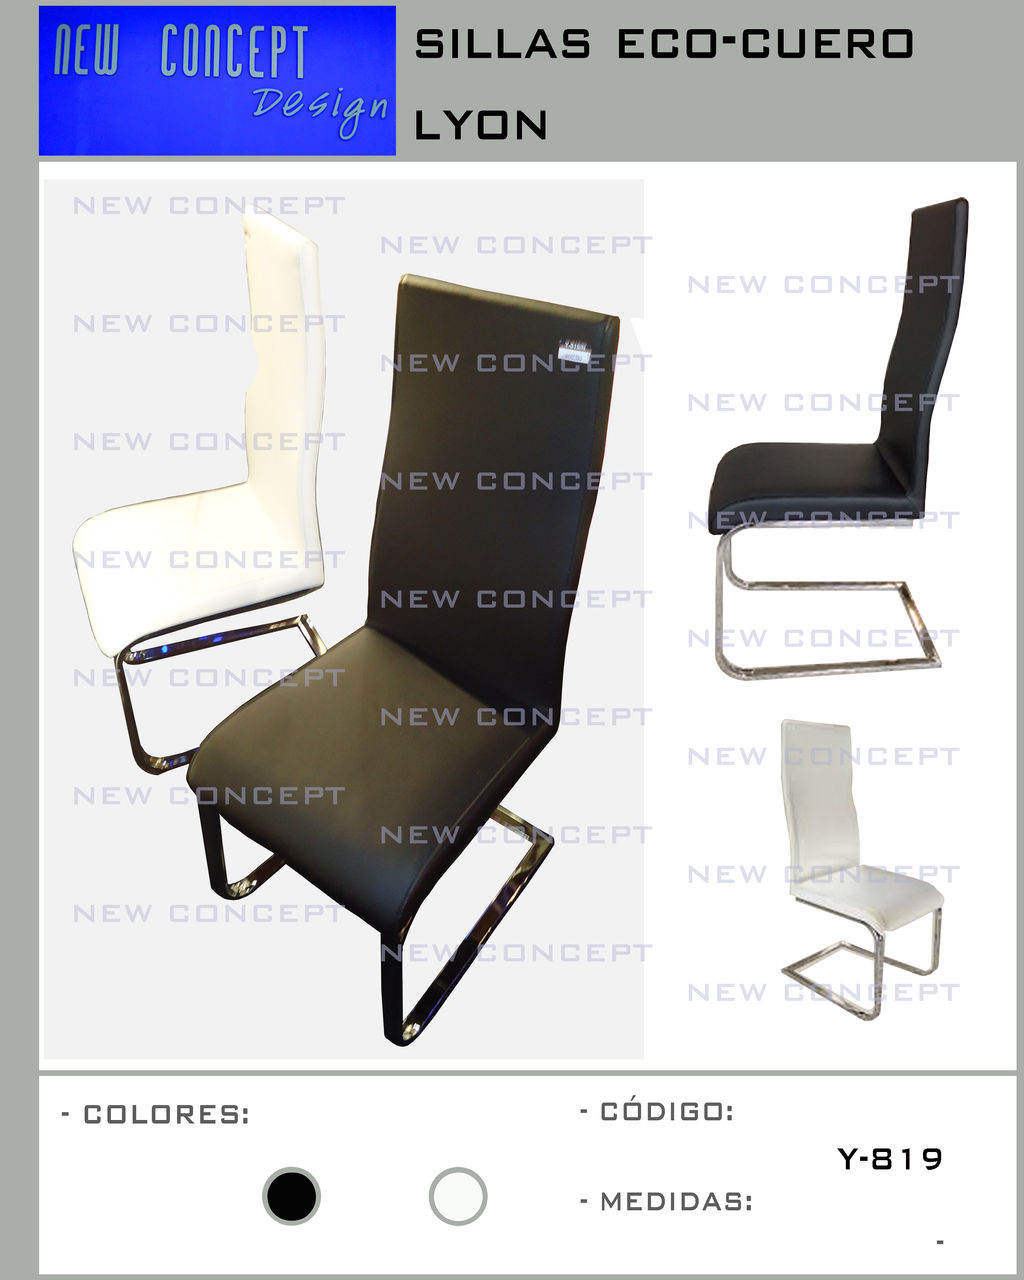 New Concept Design Muebles De Dise O Ingeniria Wix Com # Muebles New Concept